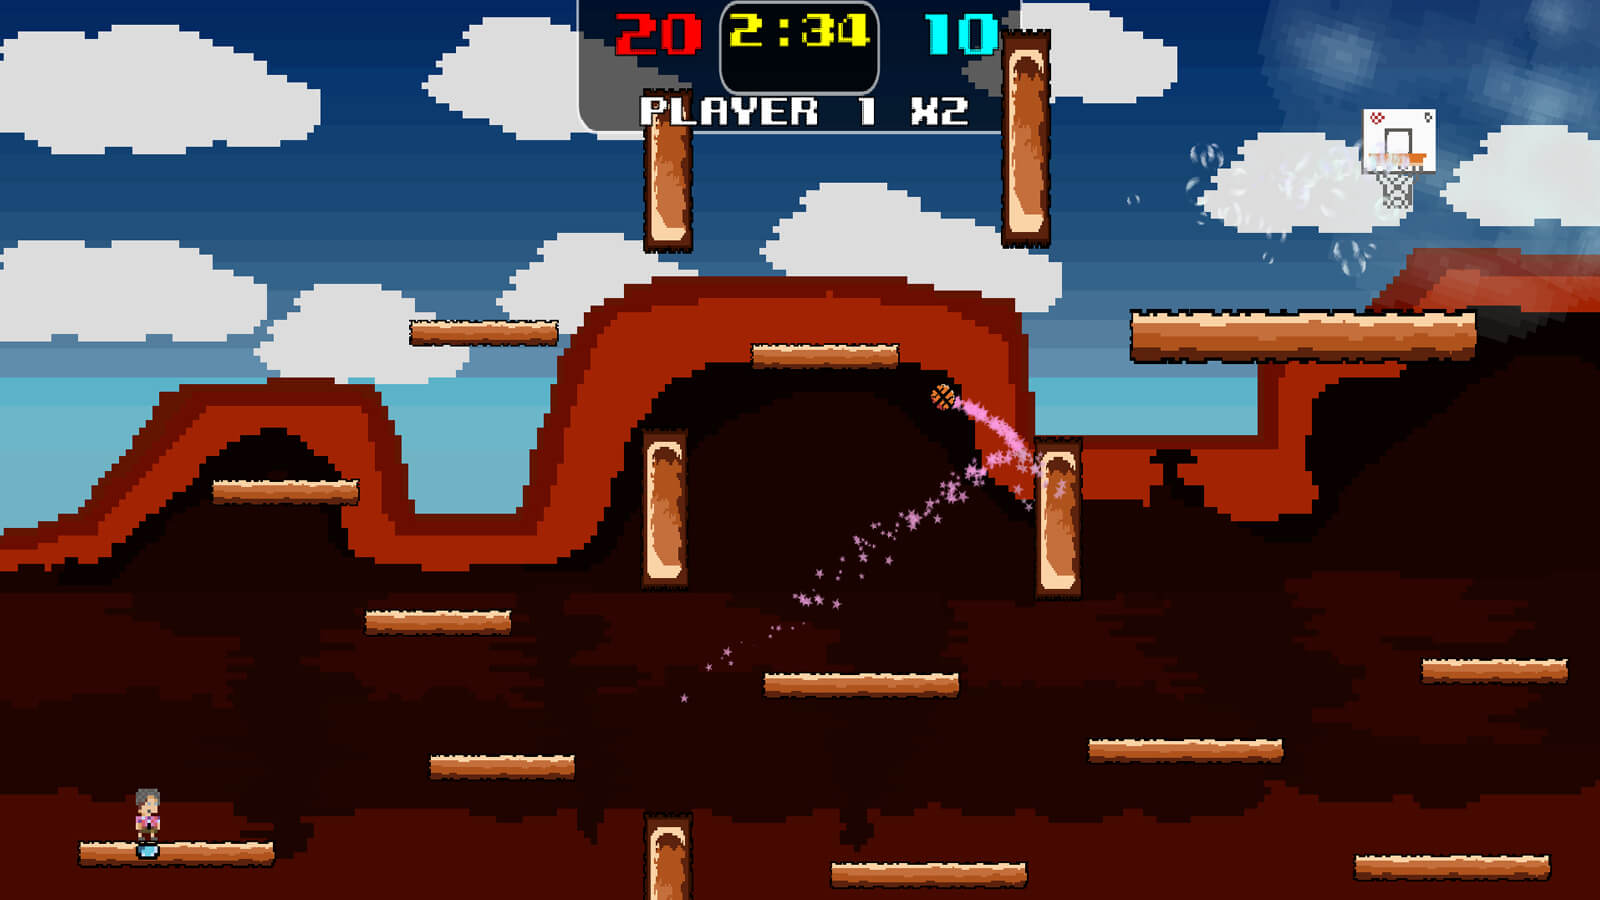 A desert level with floating wooden platforms. A basketball with pink star particles behind it bounces off a platform.